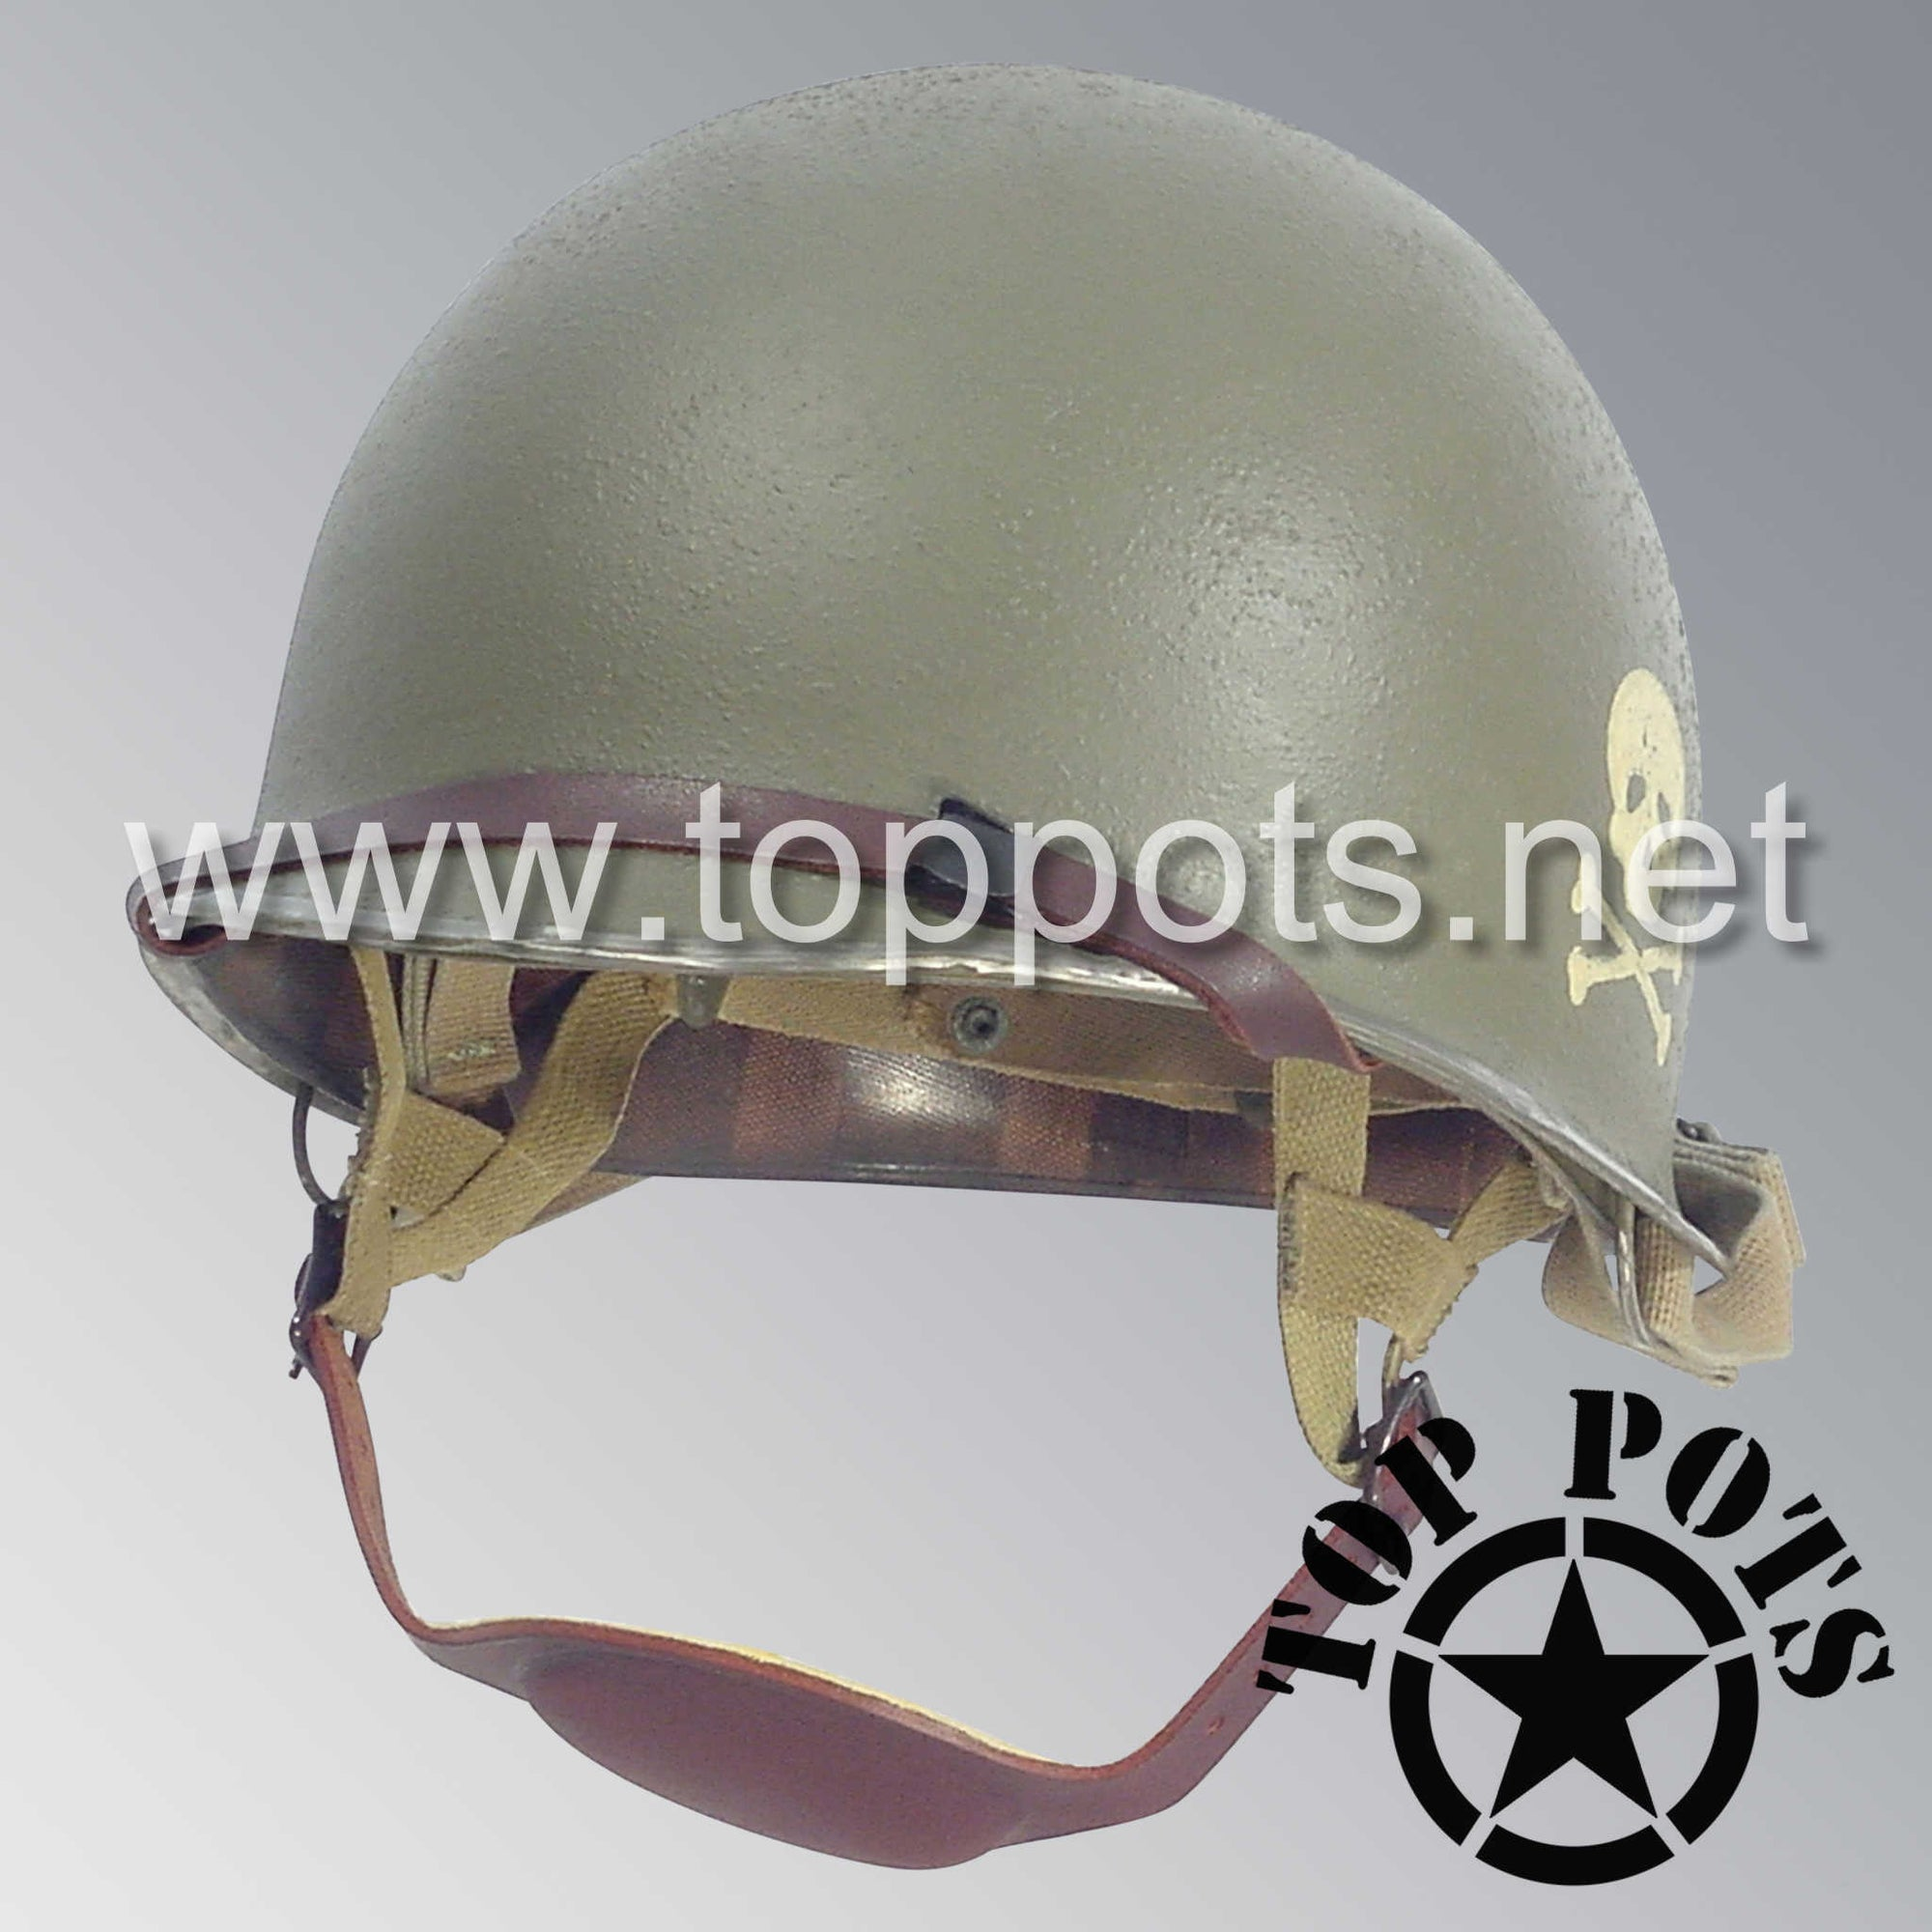 Image 1 of WWII US Army Aged Original M2 Paratrooper Airborne Helmet D Bale Shell and Liner with 504th PIR Emblem